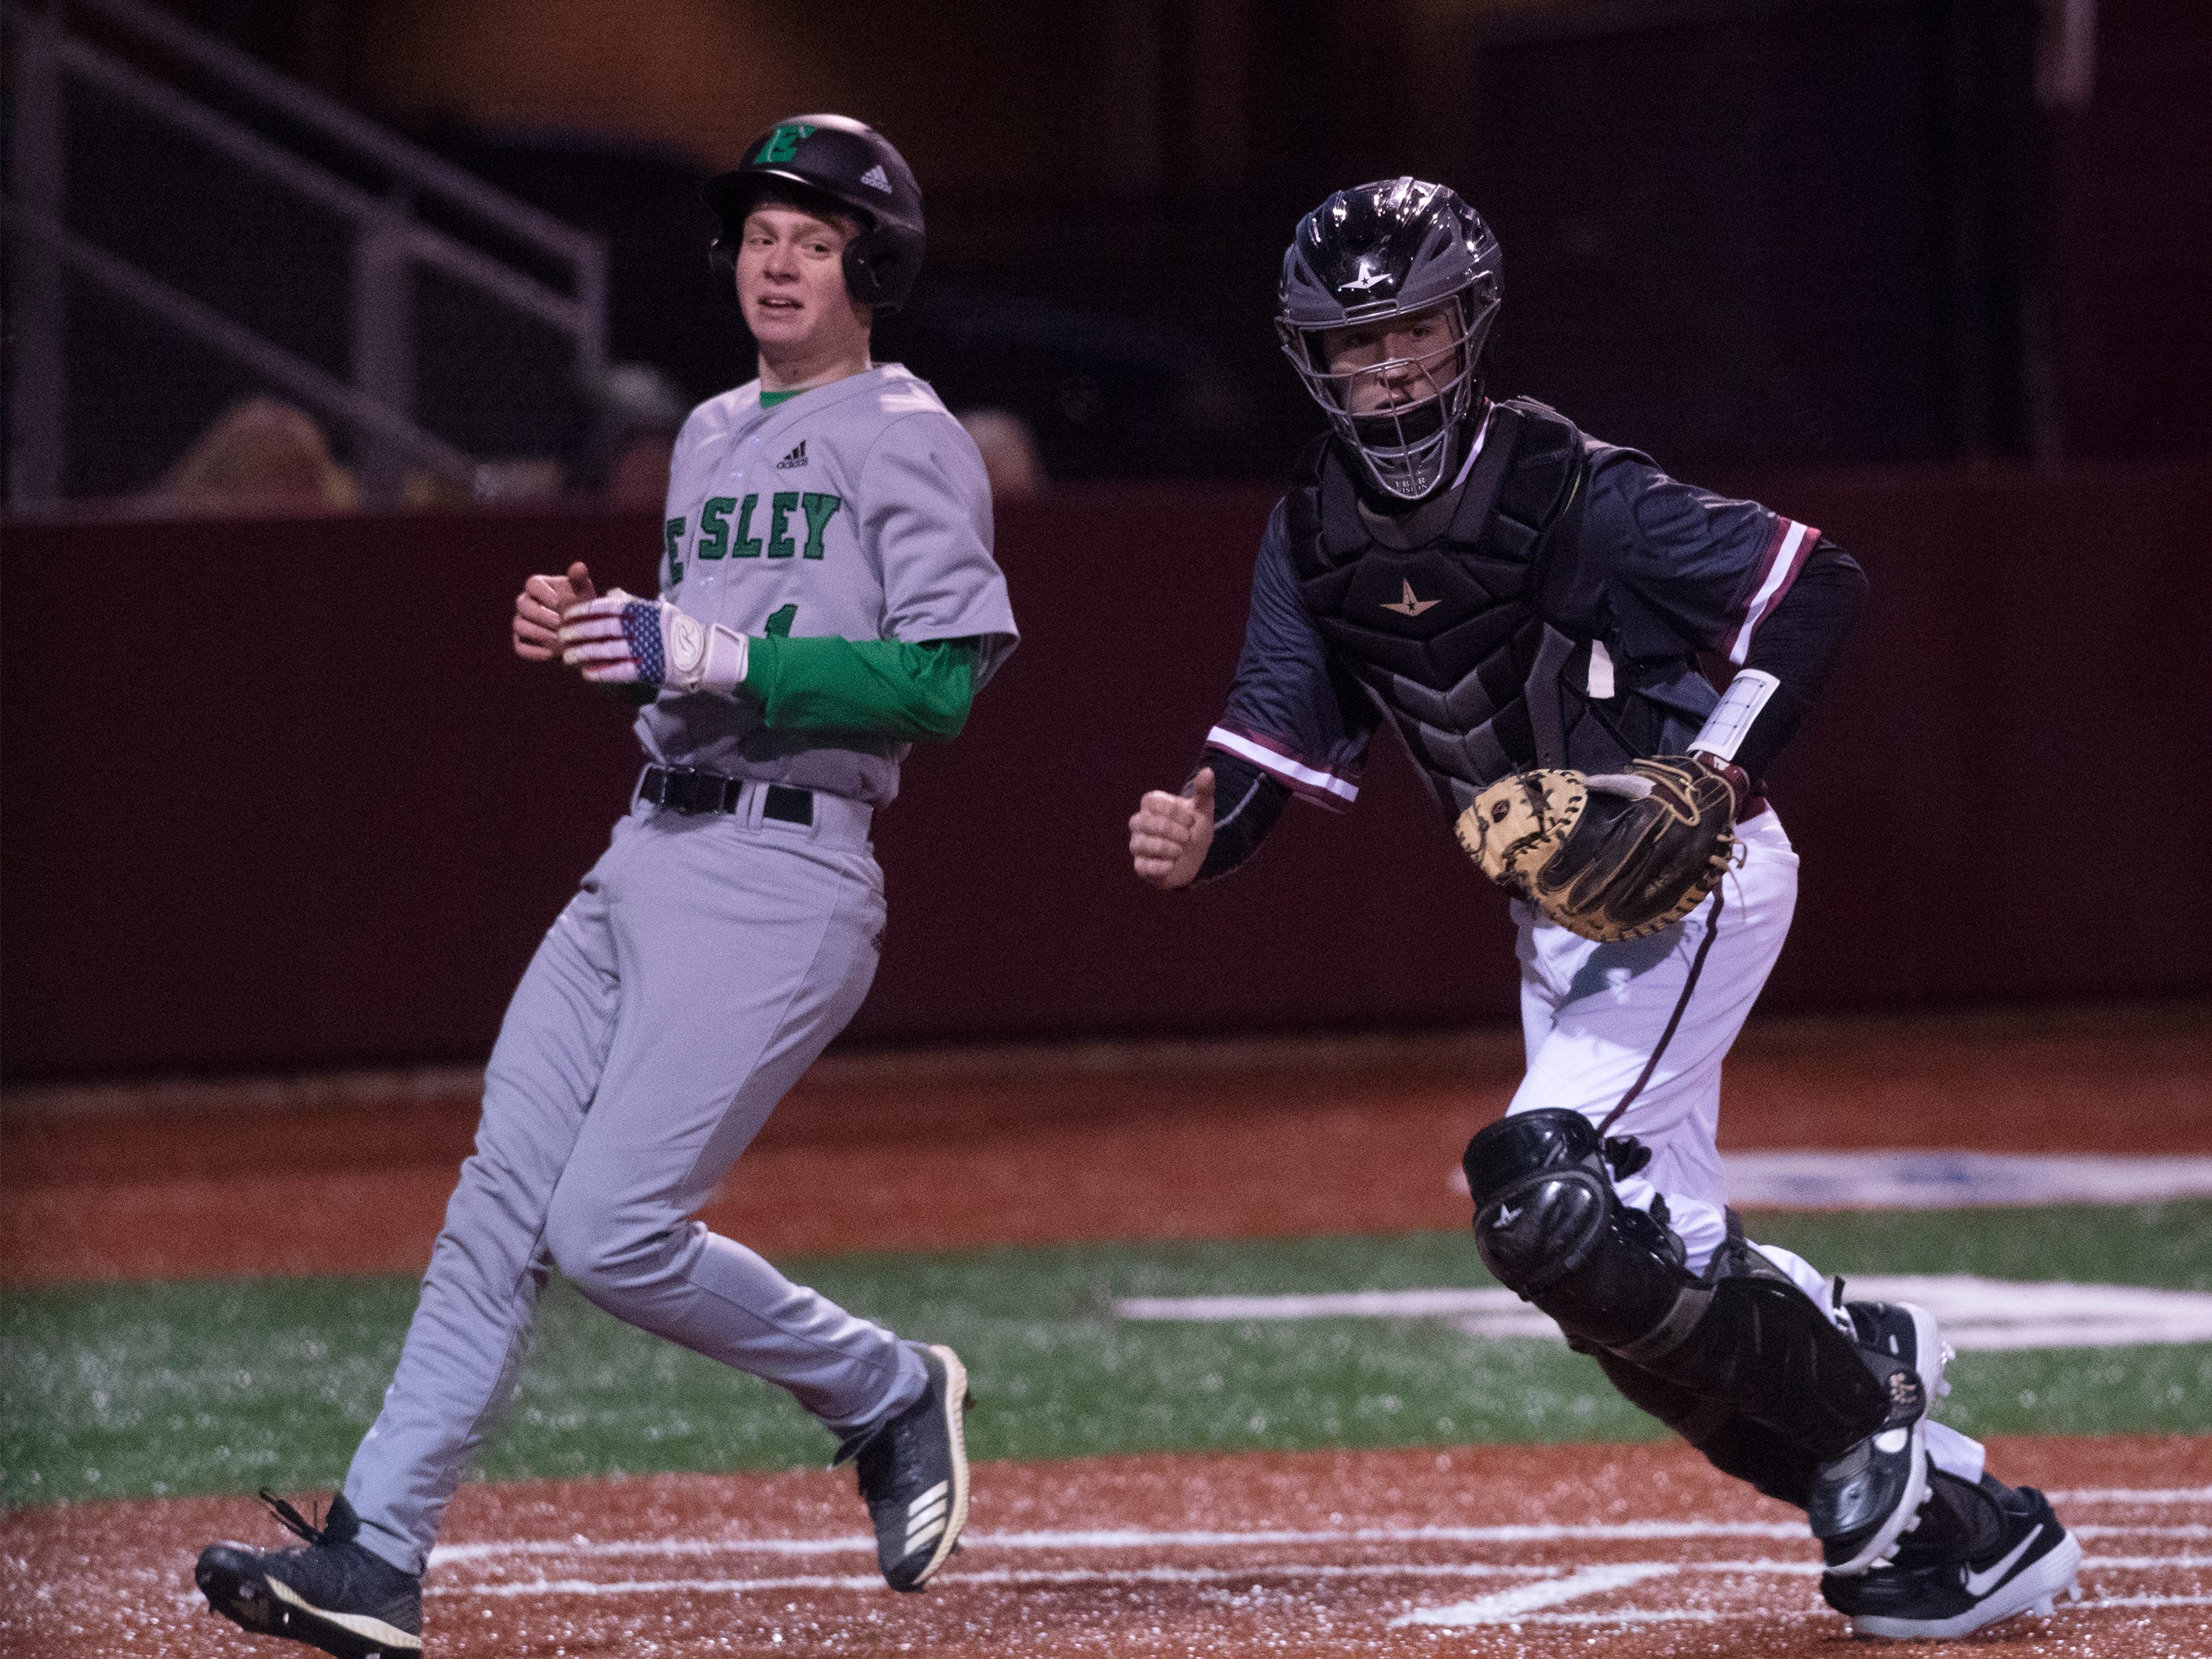 Westside High School's Jacob Bargiol (24) is at home plate while Easley High School's Ben Freeman (1) scores the second run of the game at Westside High School Tuesday, Mar. 5, 2019.